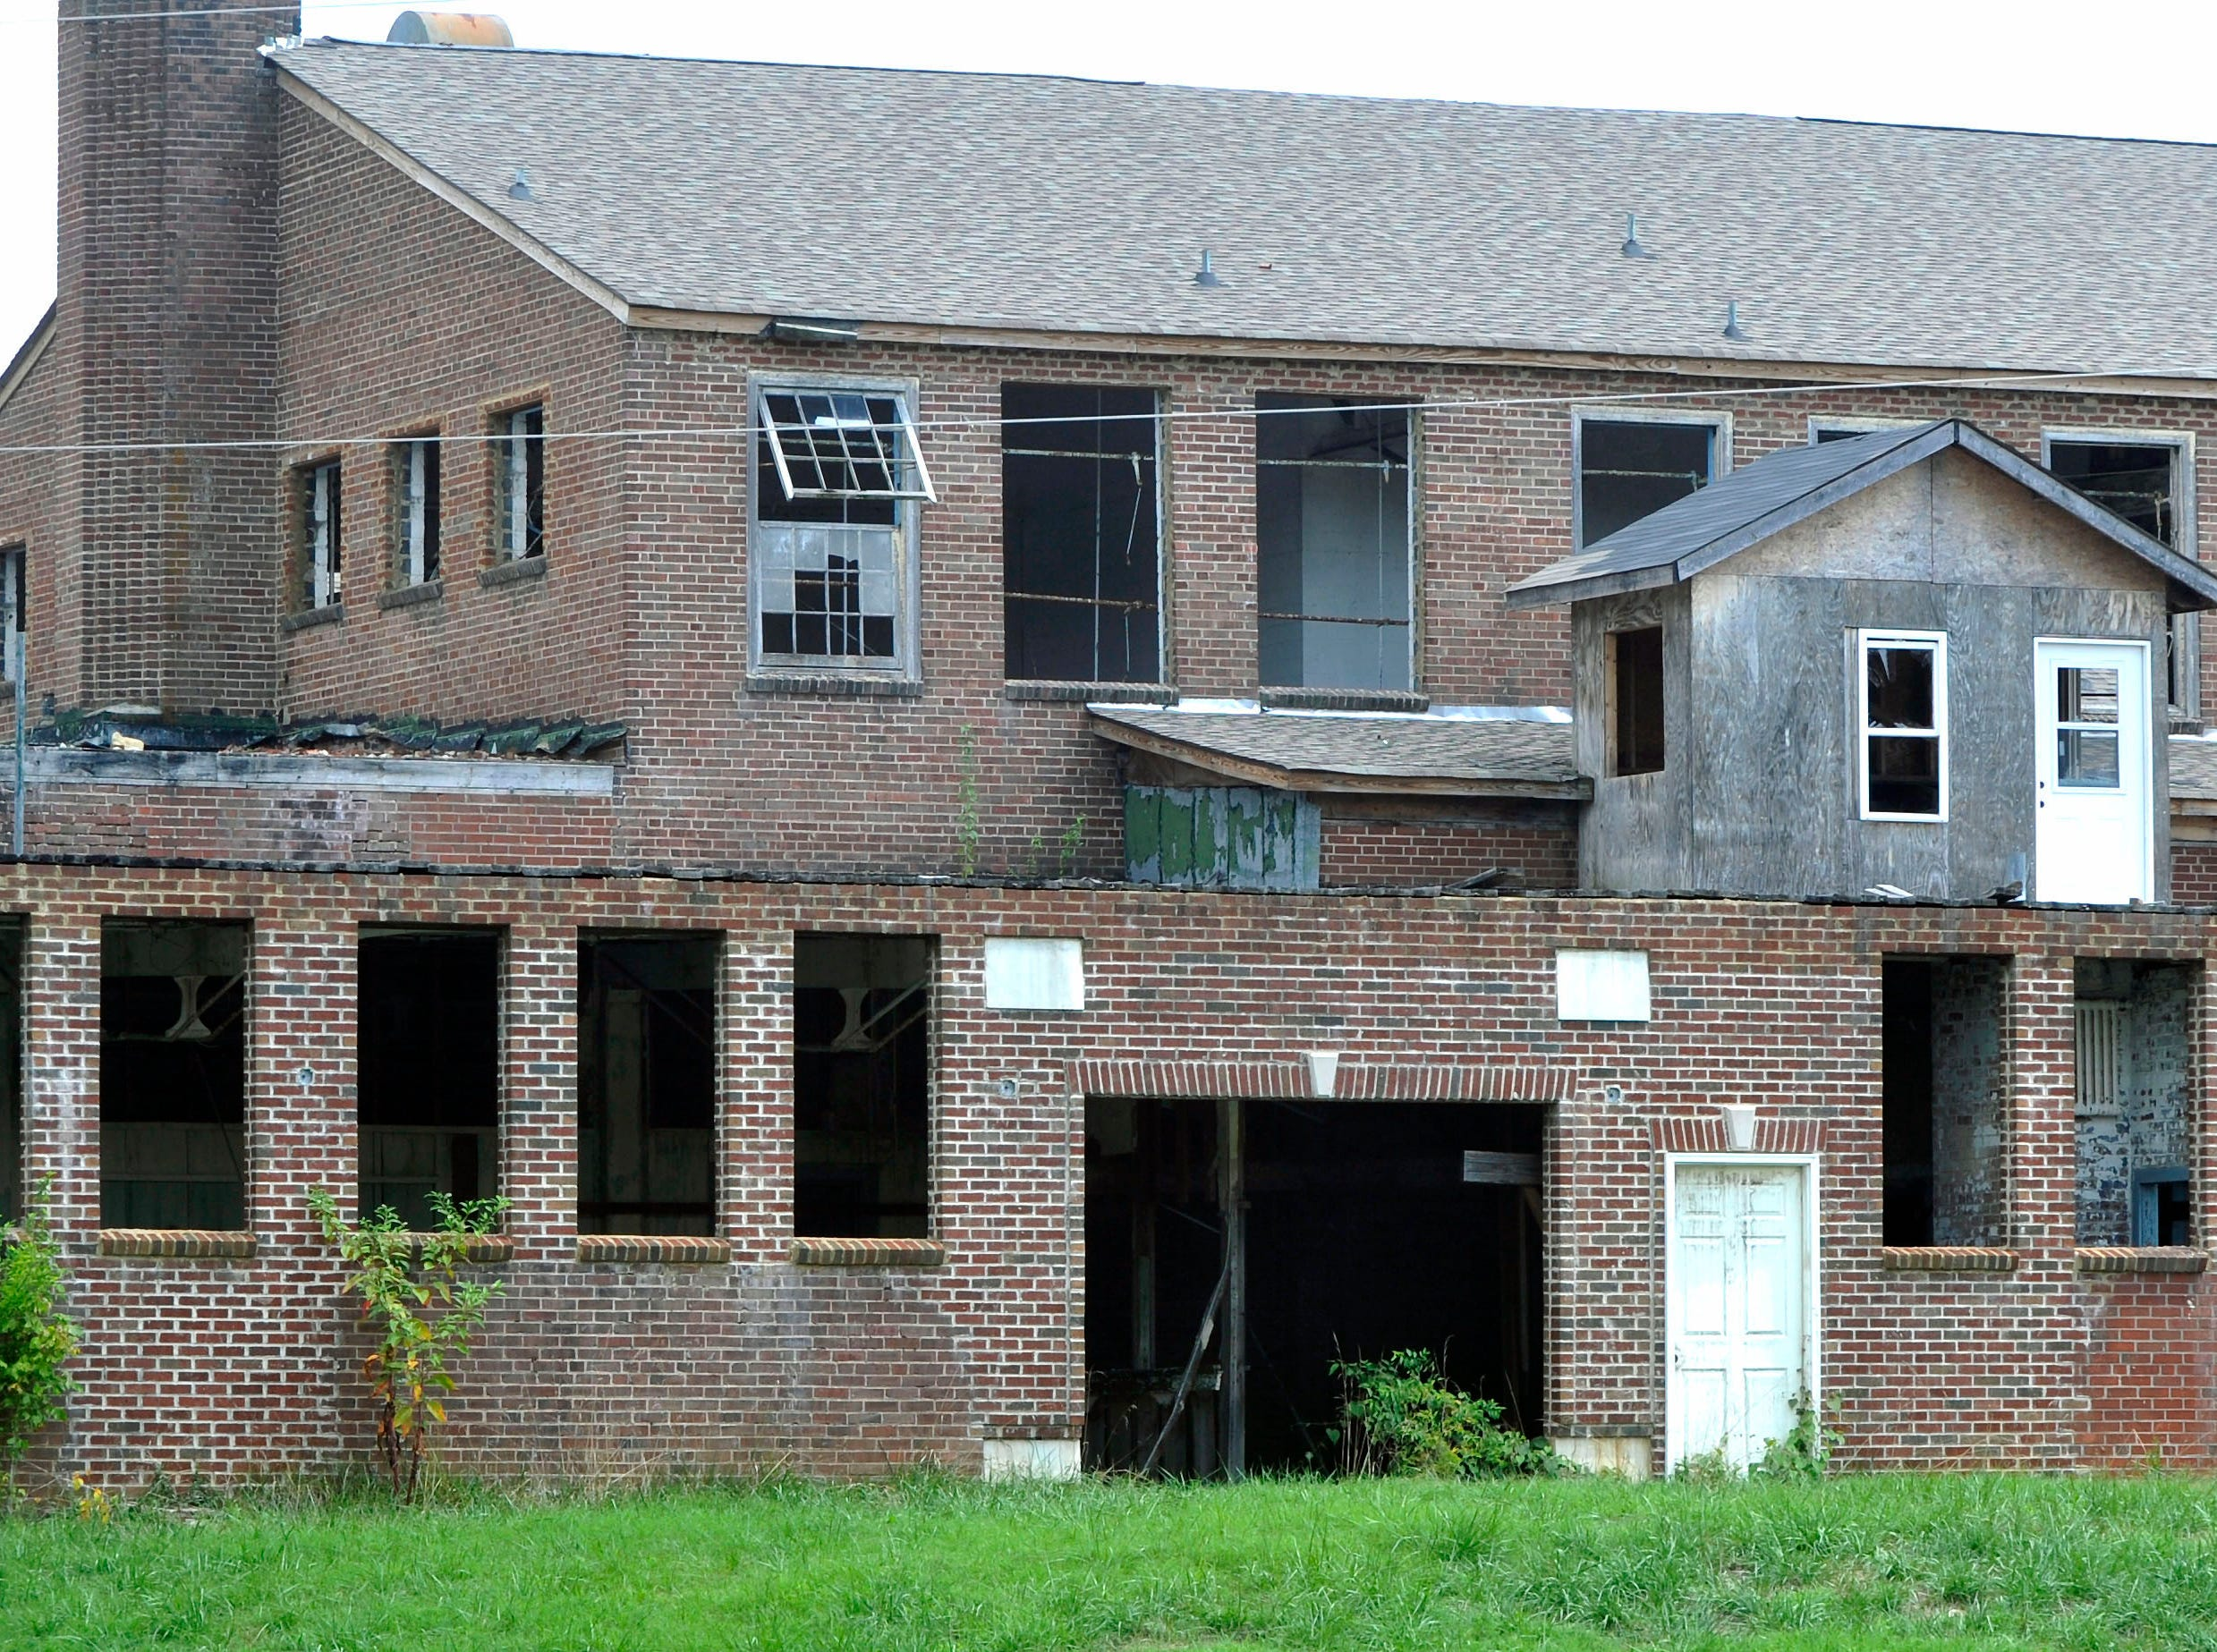 Old South High School is included on the 2013 Knox Heritage list of the most endangered historic buildings and places in Knoxville and Knox County. Designed by noted architect Charles Barber and opened in 1937 as South Knoxville Junior High School, the school was auctioned by Knox County in 2008 to Bahman Kasraei. The building has since deteriorated to the point that the City of Knoxville secured the property through its Demolition by Neglect powers. Knox Heritage is calling upon the owner to restore the property immediately or sell it to a new owner with the ability to do so.